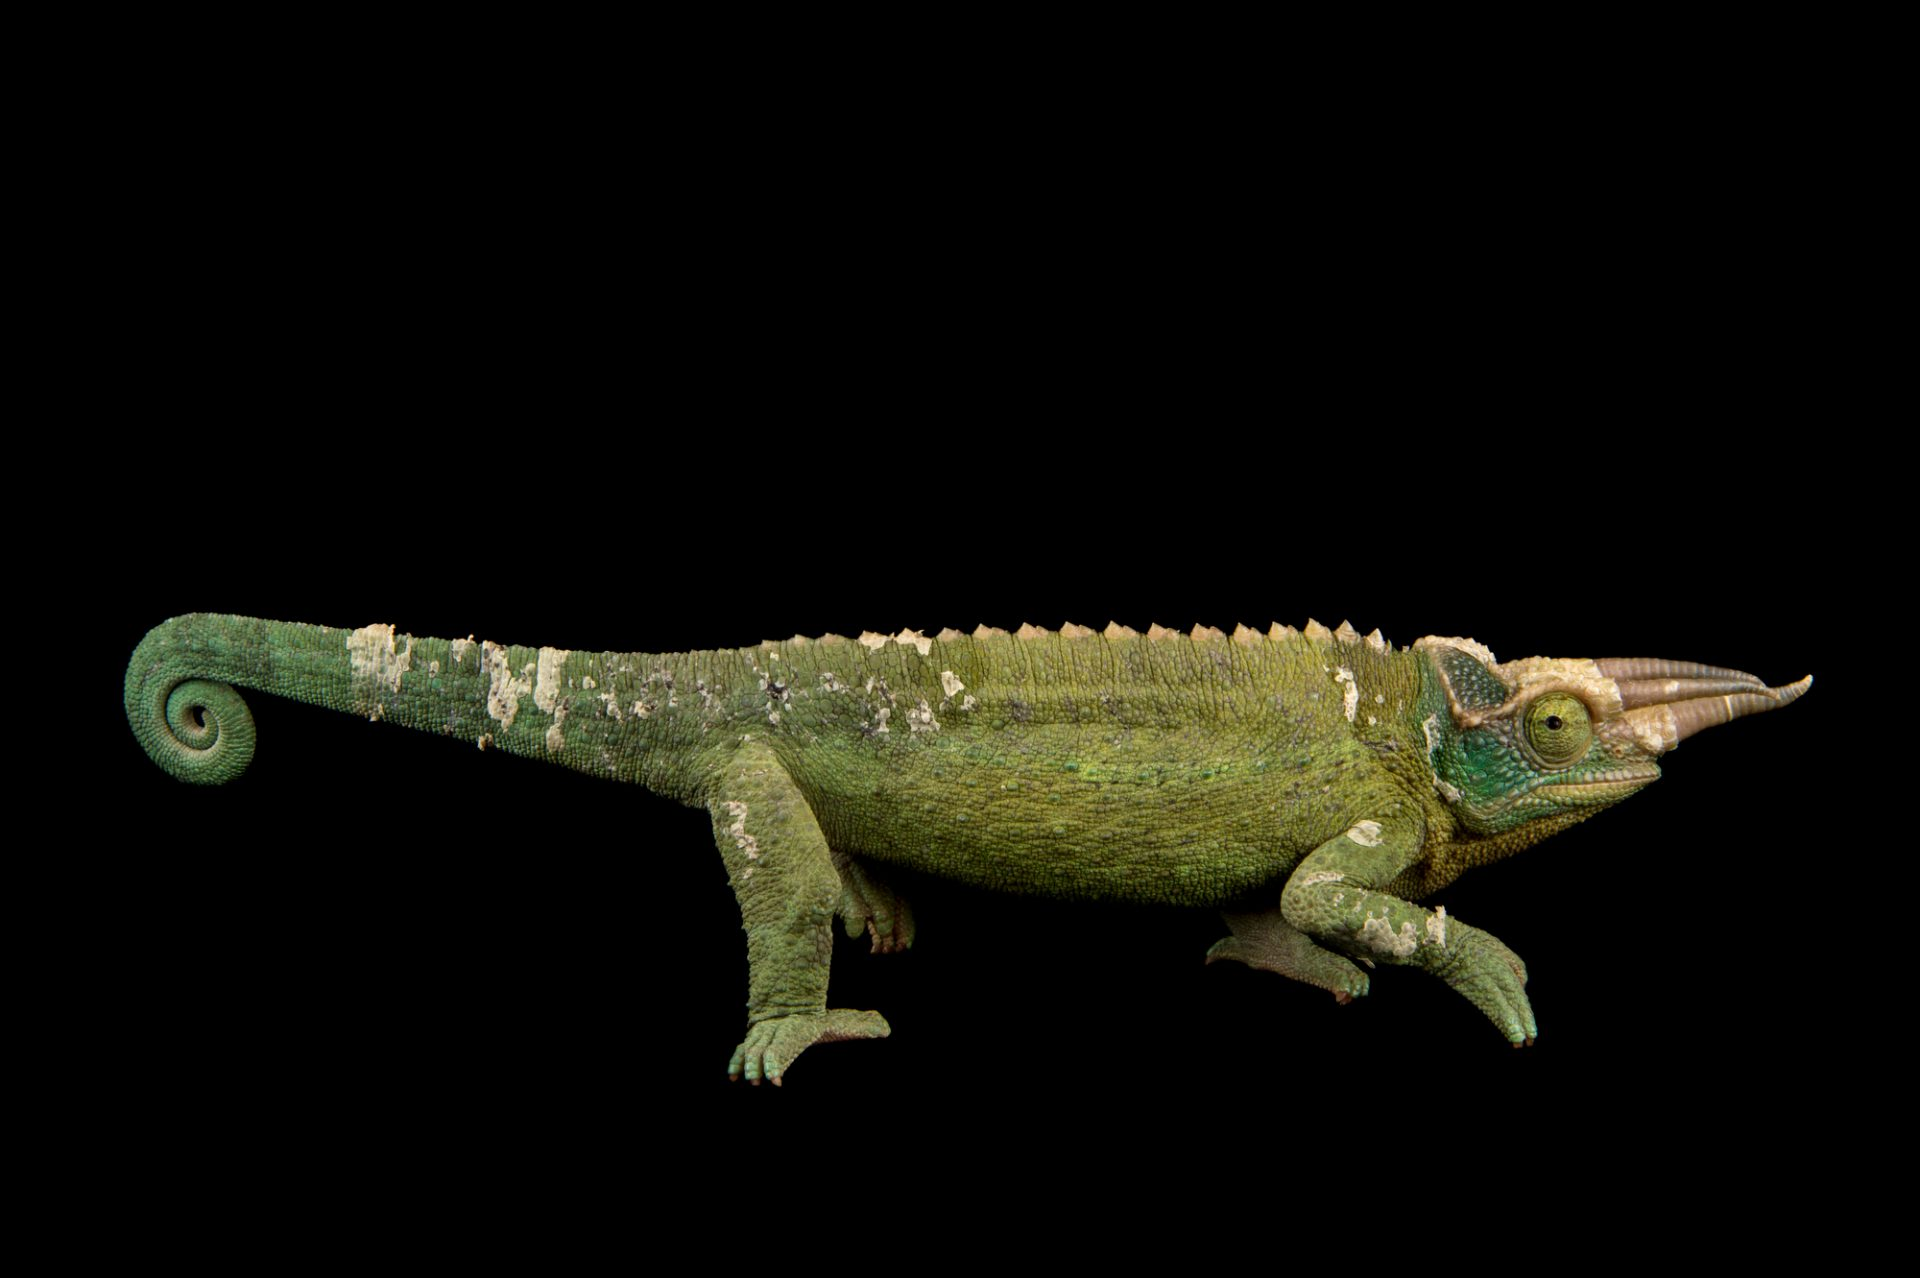 Photo: Jackson's three horned chameleon (Trioceros jacksonii) at the Budapest Zoo.